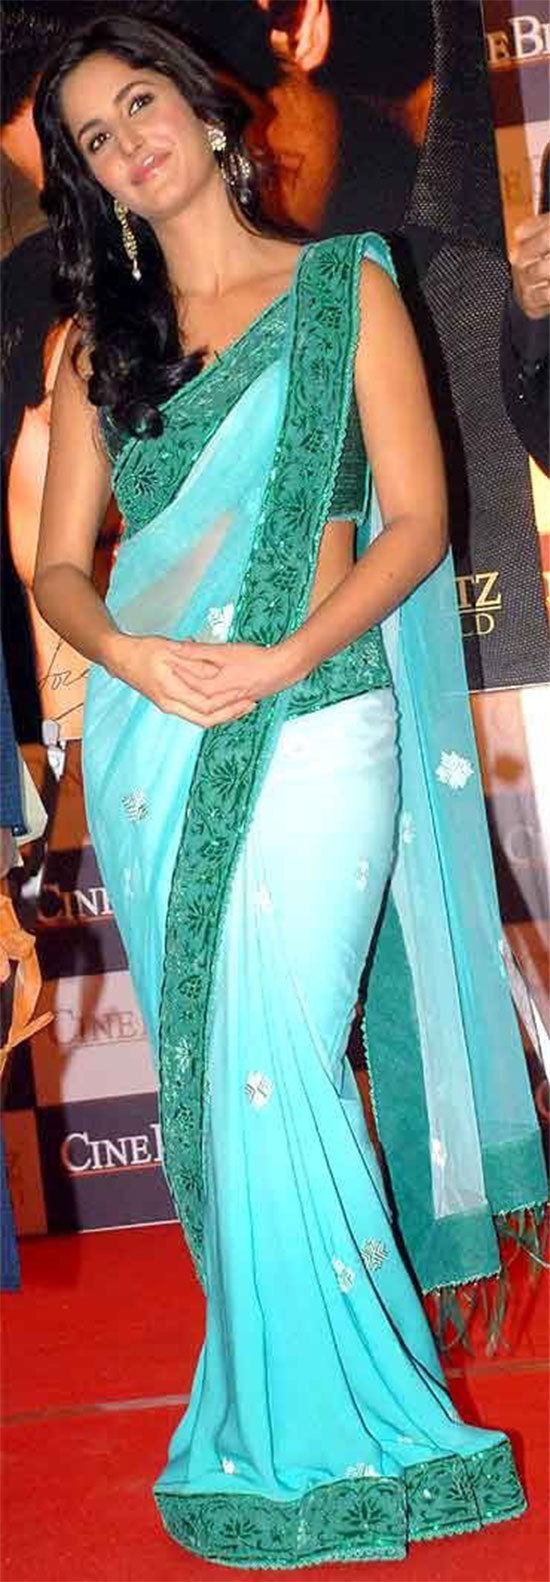 katrina kaif in clear Teal Saree